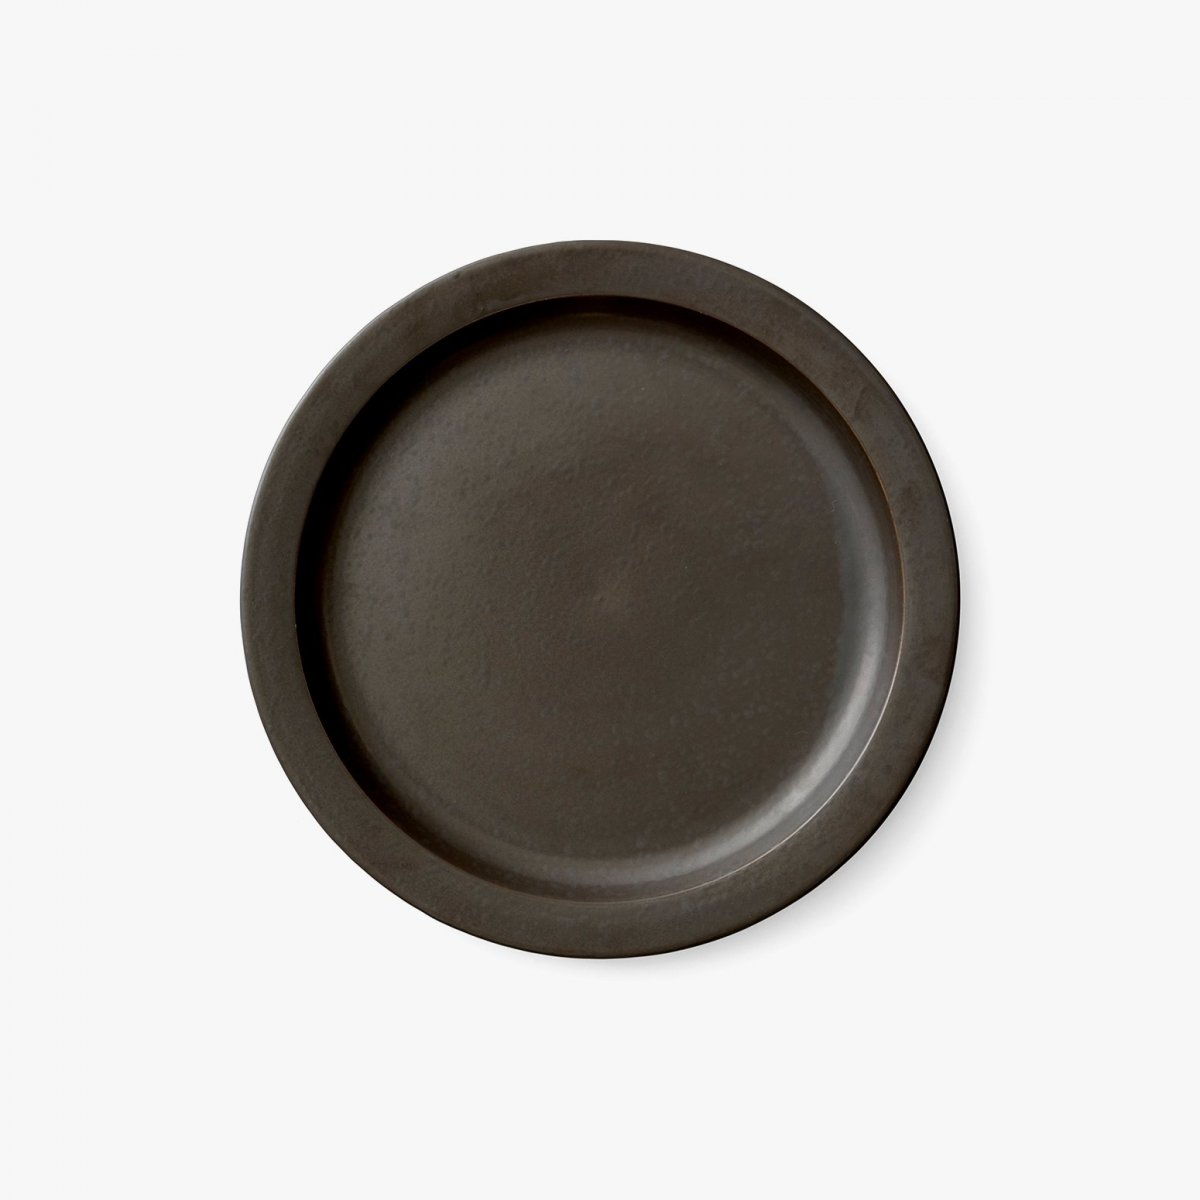 New Norm Dinnerware Plate/Dish, dark glazed.